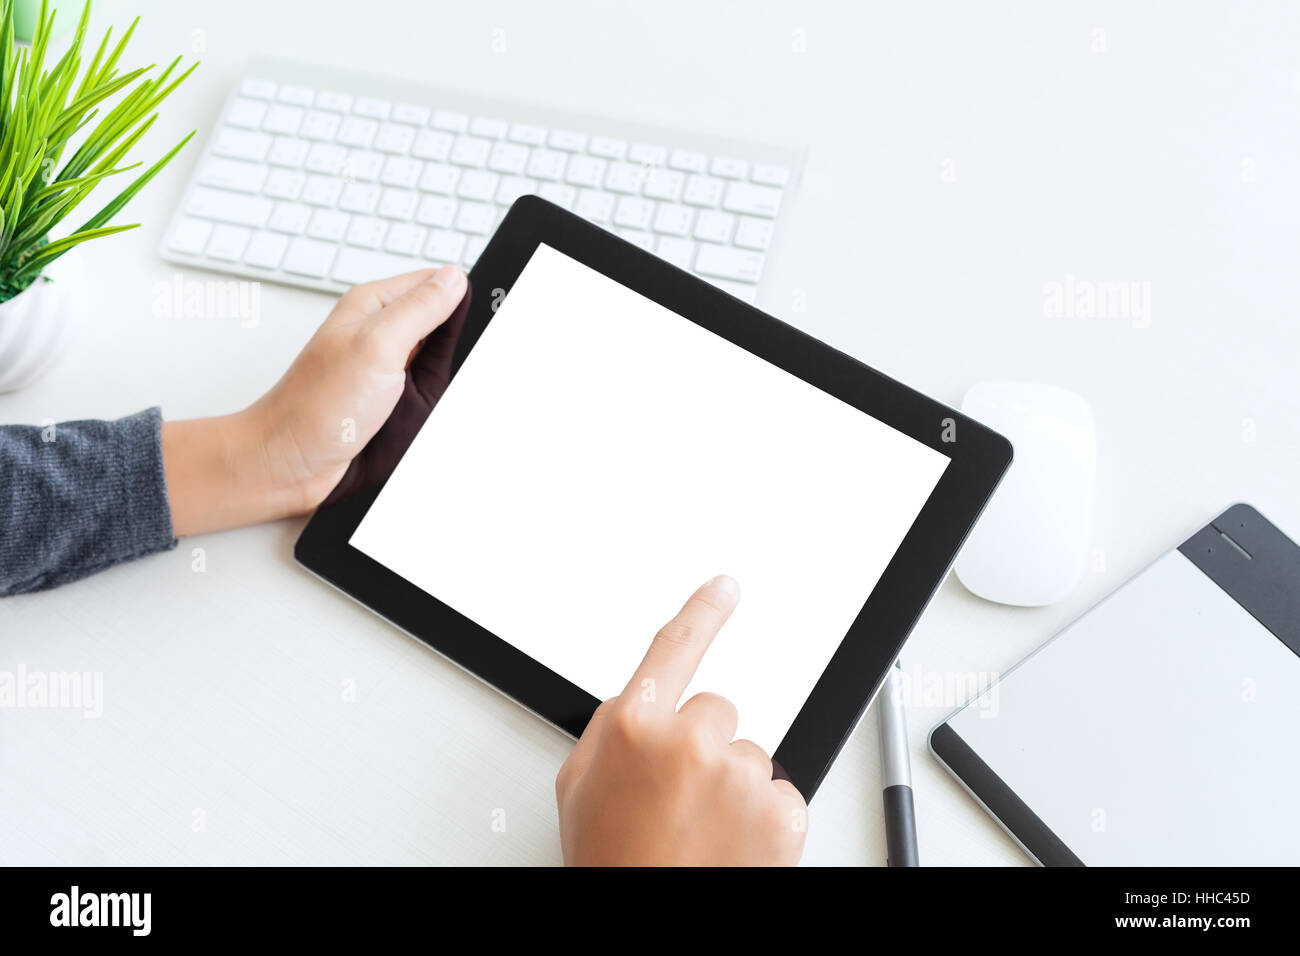 hand using digital tablet finger touch blank screen on desk work table Stock Photo